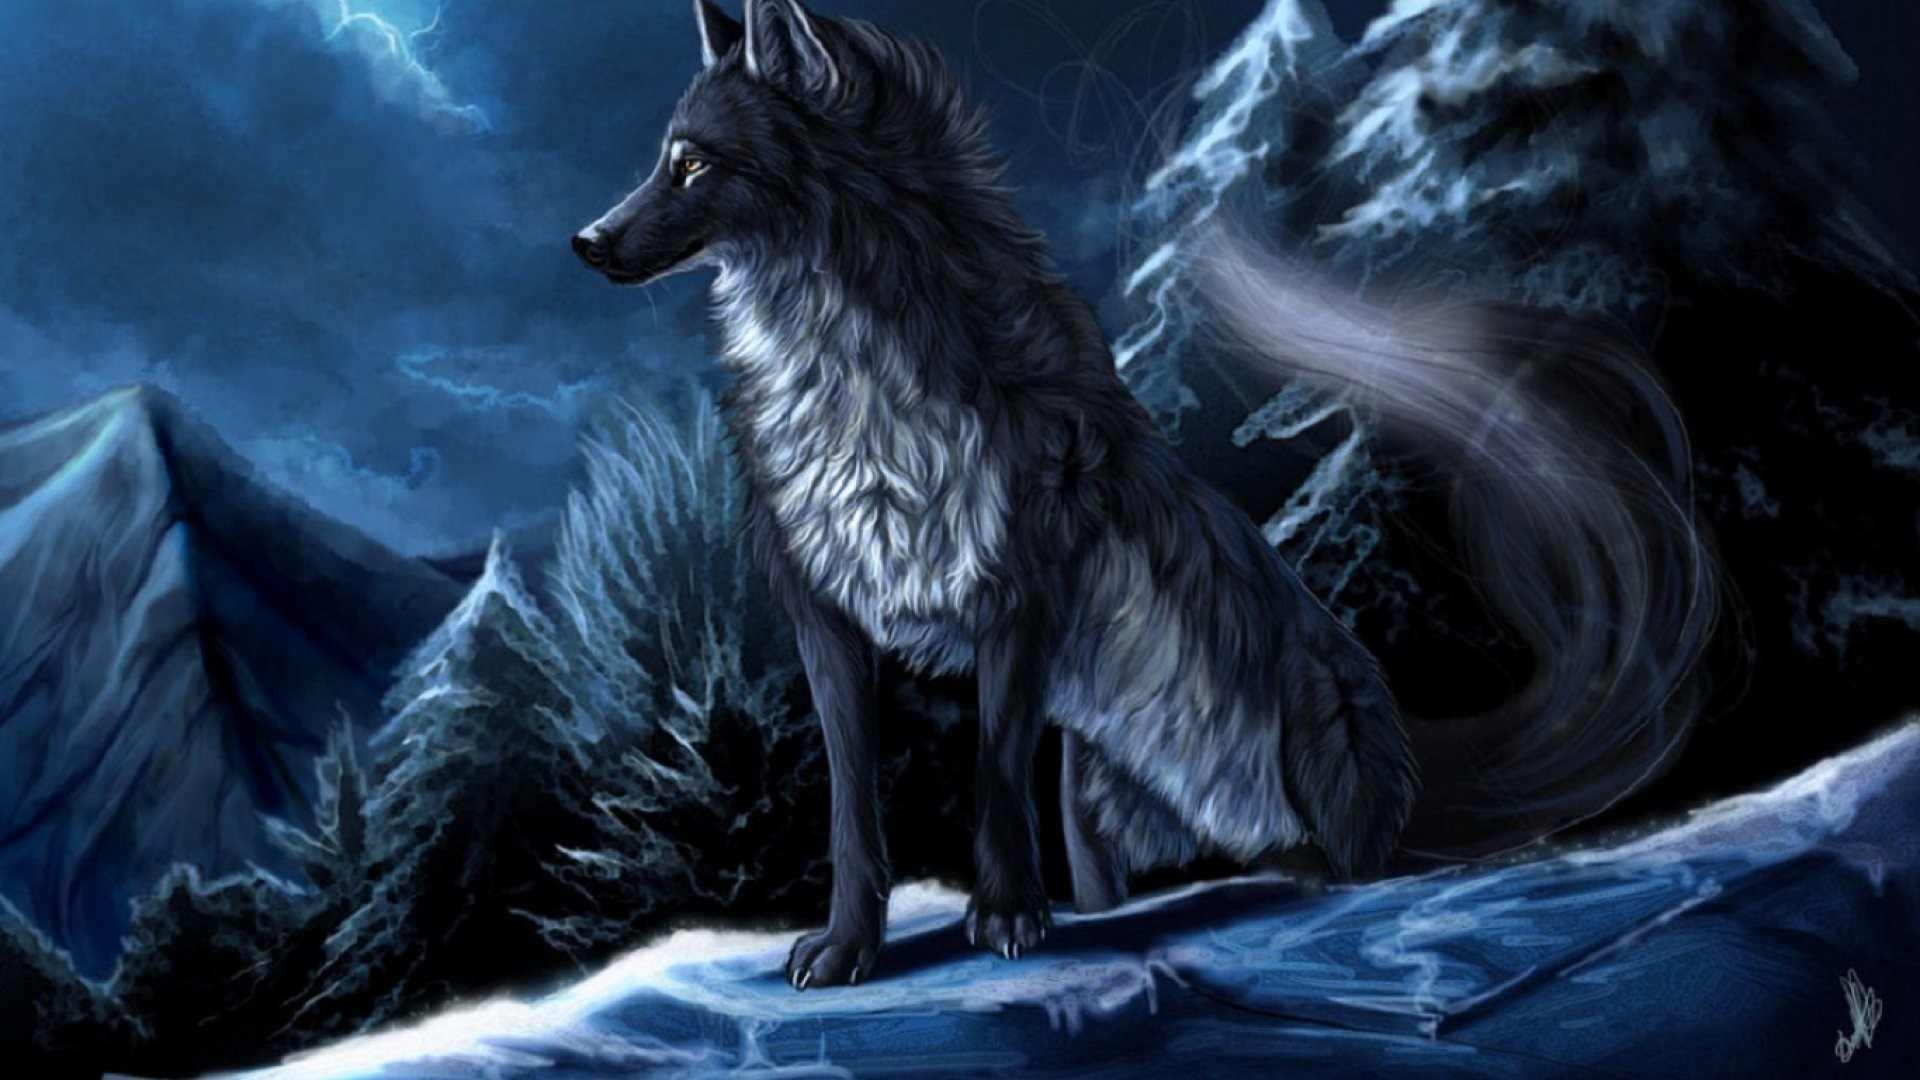 1987x1244 Monster Fantastic World Fantasy Wolf Wolves Werewolf Wallpaper At Wallpapers